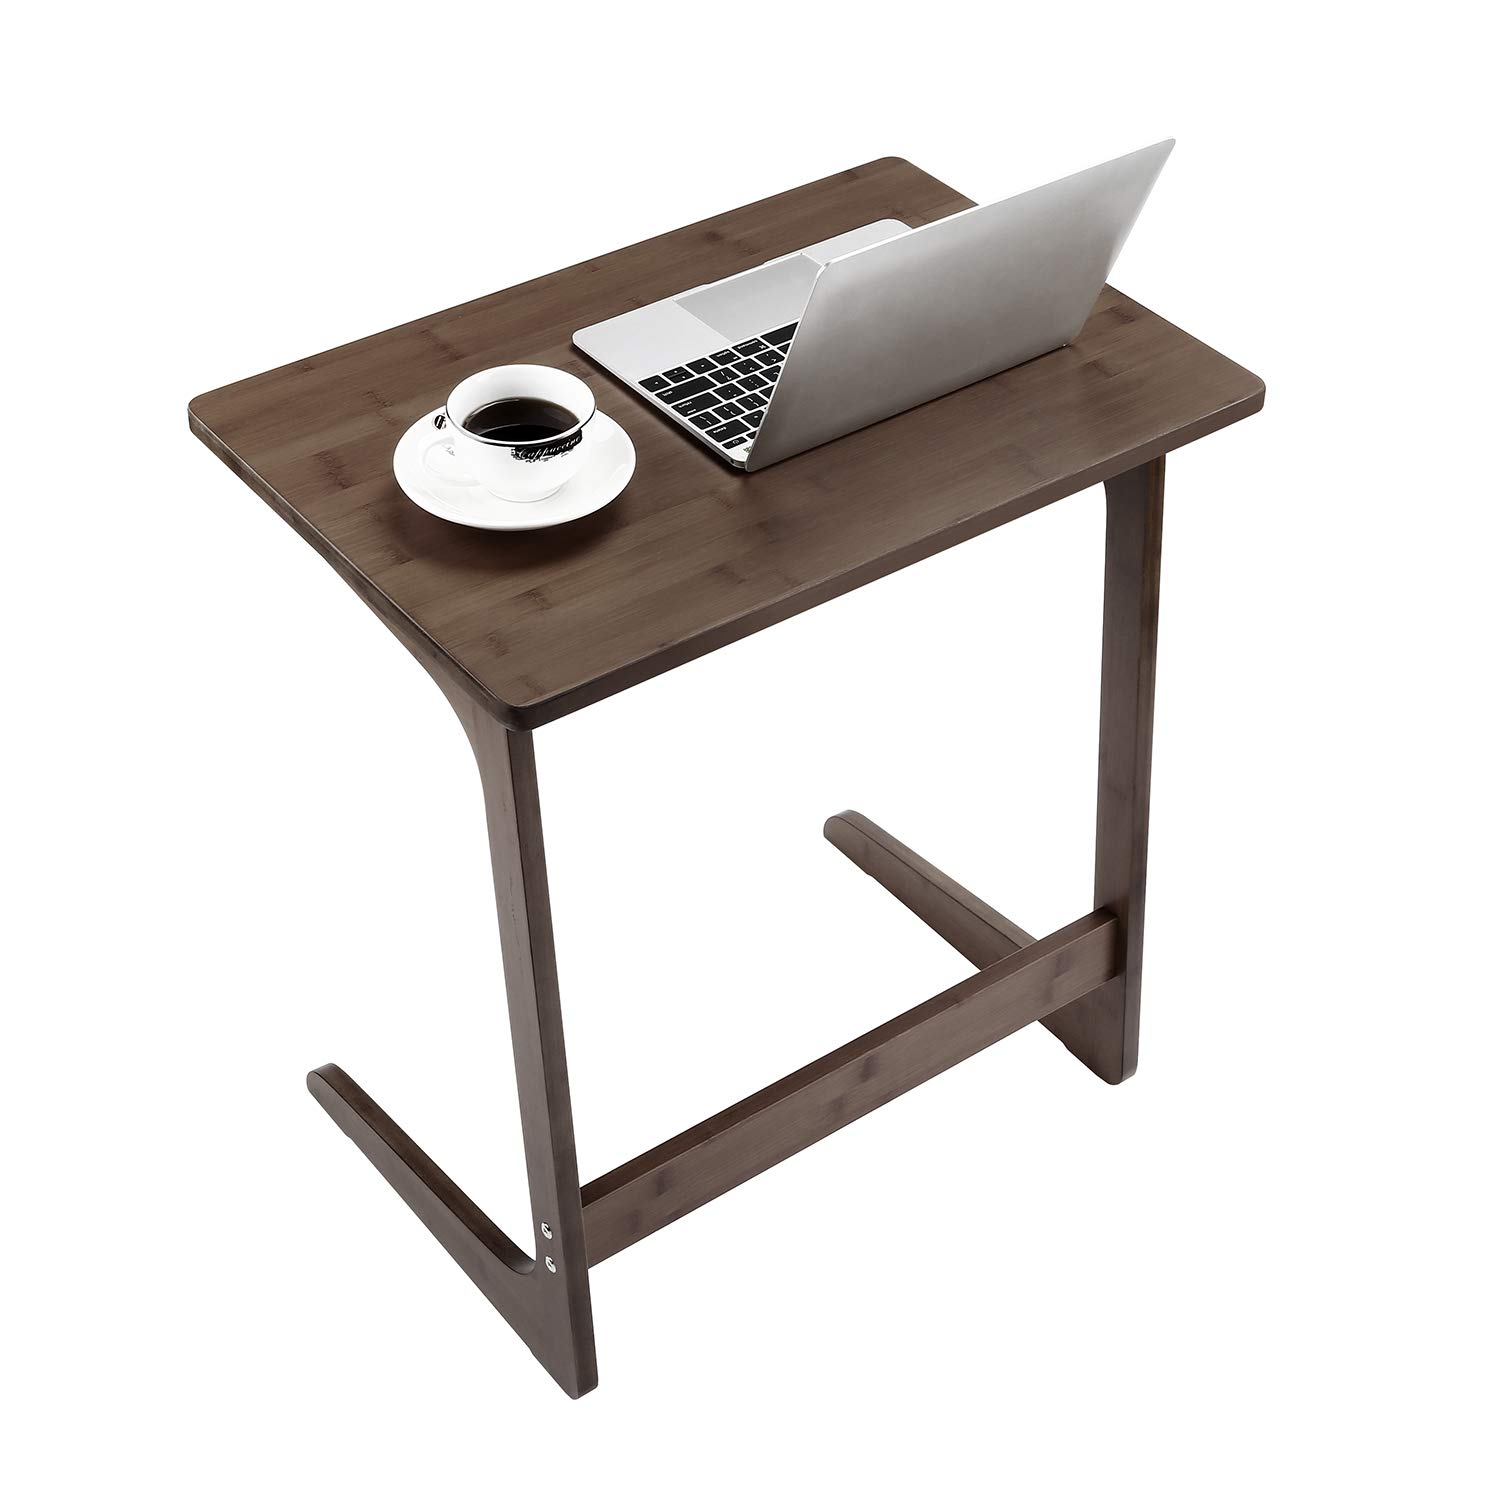 Sofa Table TV Tray, NNEWVANTE Couch Sofa End Table Laptop Desk Bamboo Coffee Table Side Table Snack Tray for Eating Writing Reading Living Room Modern Furniture Home Decor Office Easy Assemble-Walnut